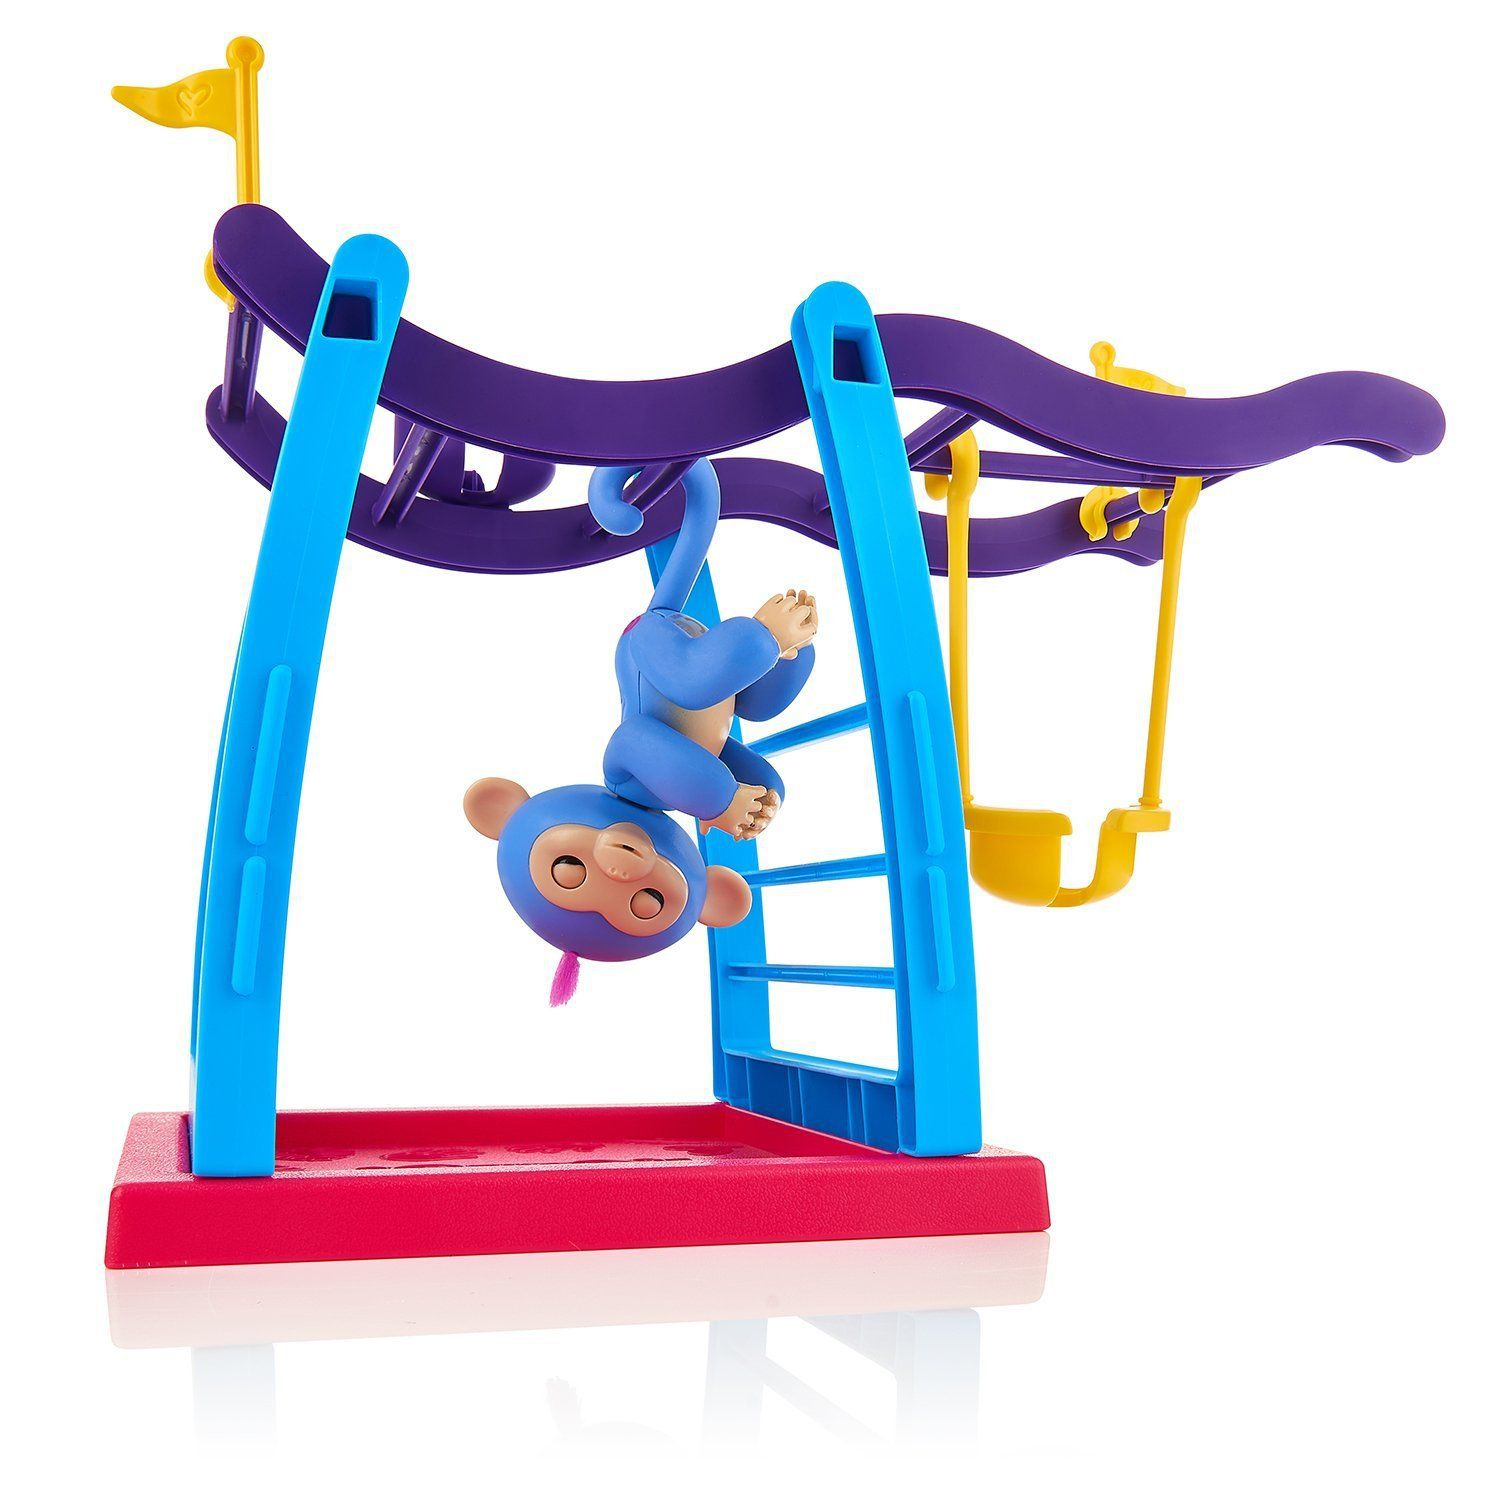 fingerling monkey and playstand best new playsets for girls this christmas 2017 new toys for girls baby monkeys that are interactive - New Toys For Christmas